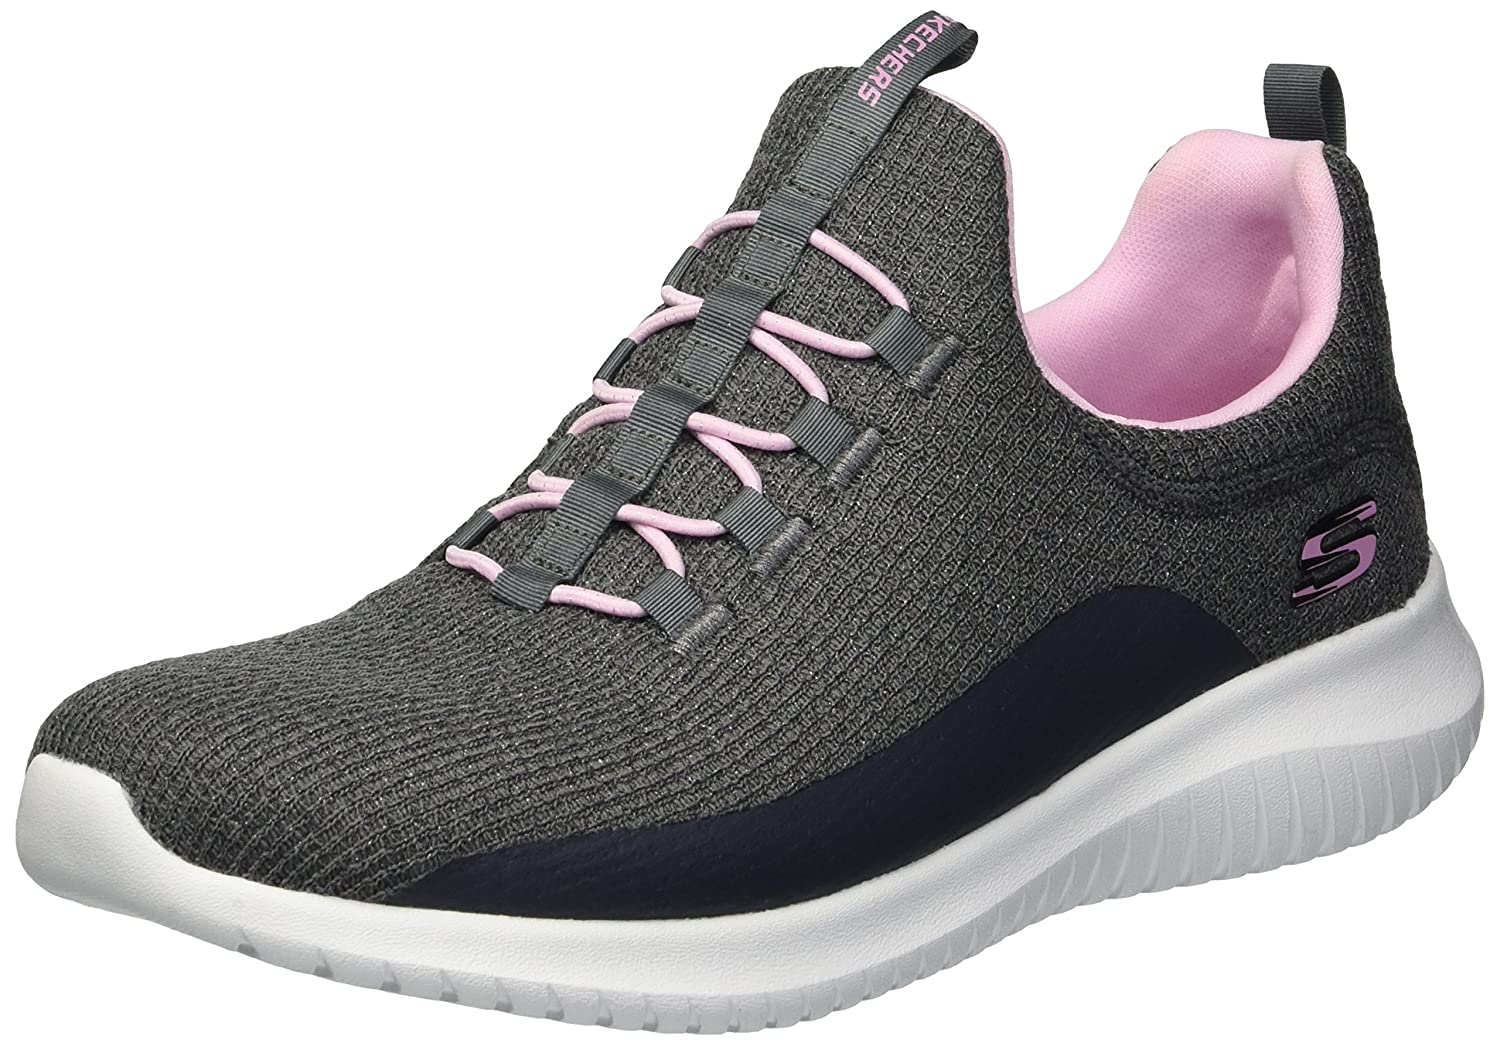 online store 8a081 2a724 Skechers Girls  Ultra Flex Slip on Trainers  Amazon.co.uk  Shoes   Bags